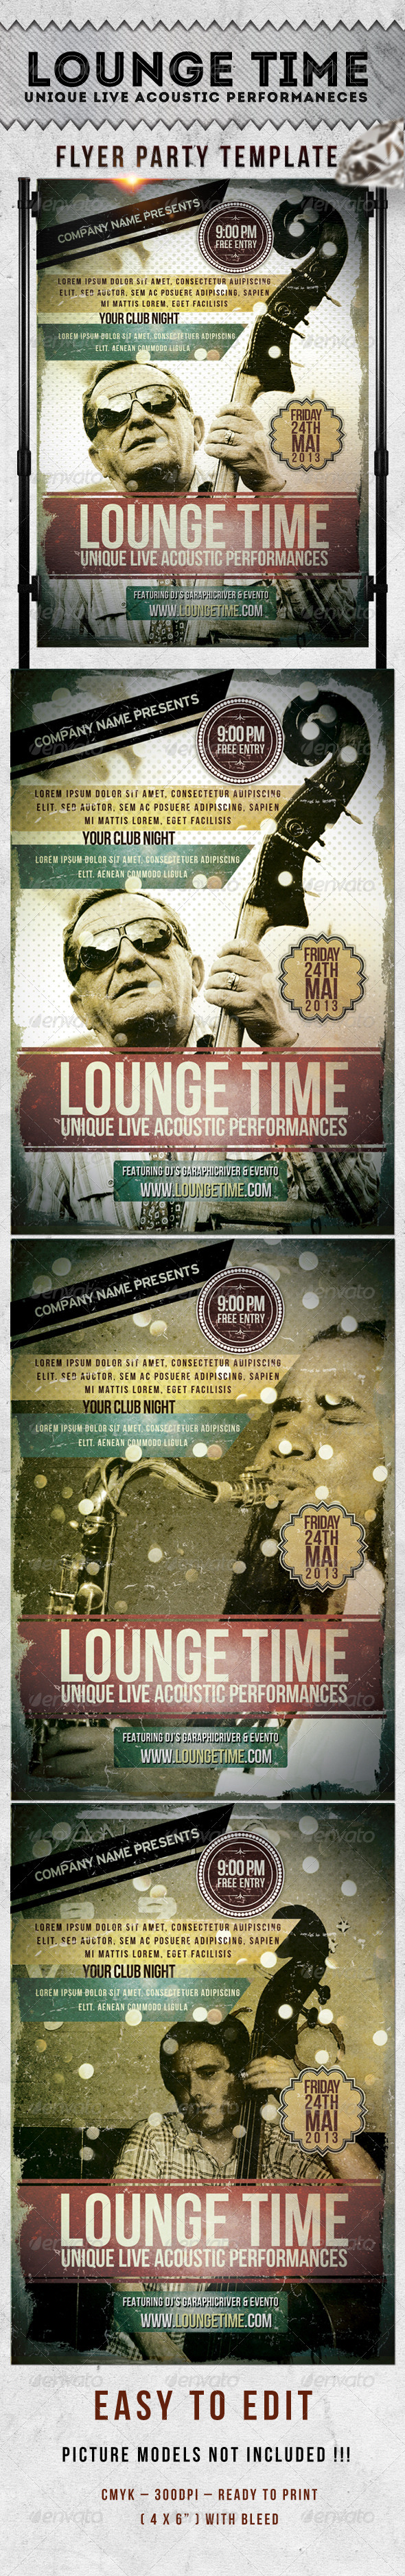 Lounge Time Flyer Template - Events Flyers